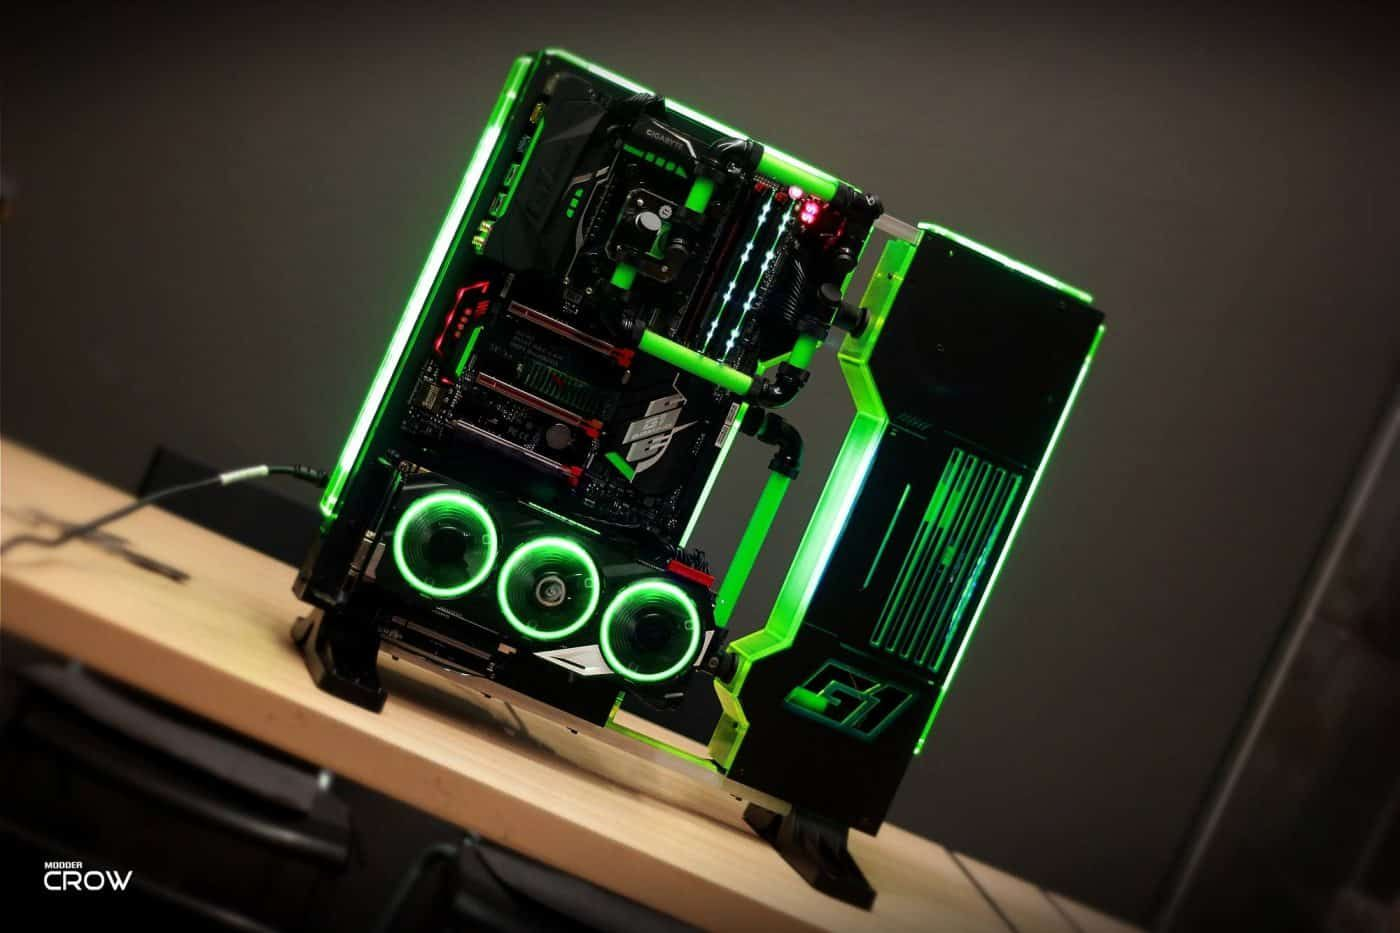 This Week S Build Comes From Modder Crow Who We Ve Featured Here Before He Has Taken The Thermaltake Core P3 And Custom Computer Custom Pc Computer Hardware